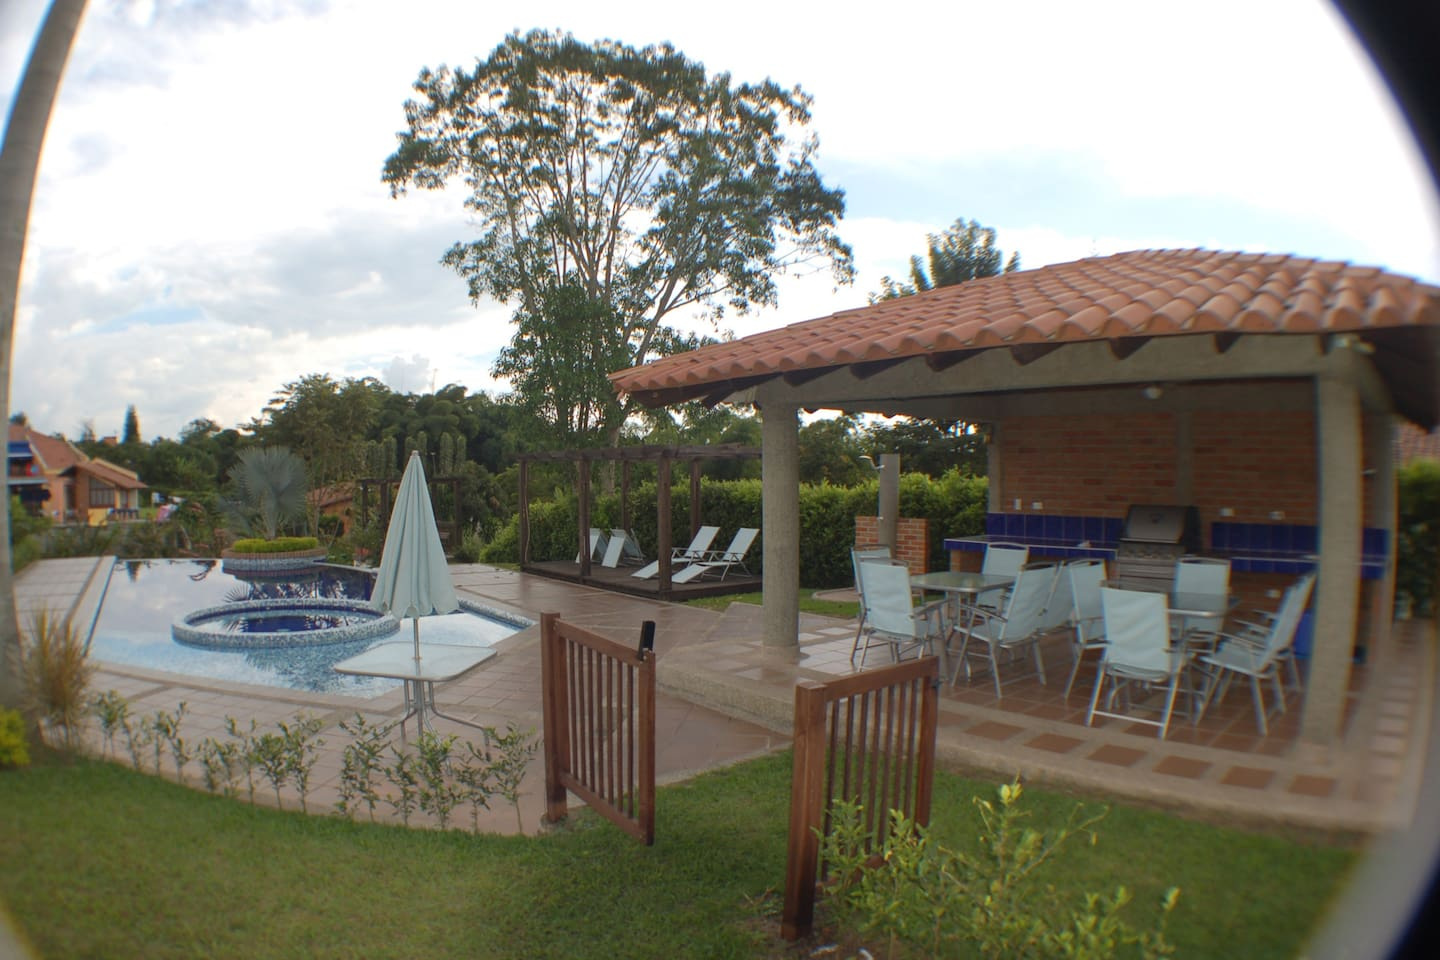 Kiosk, Grill, Rest area, Jacuzzi and Pool